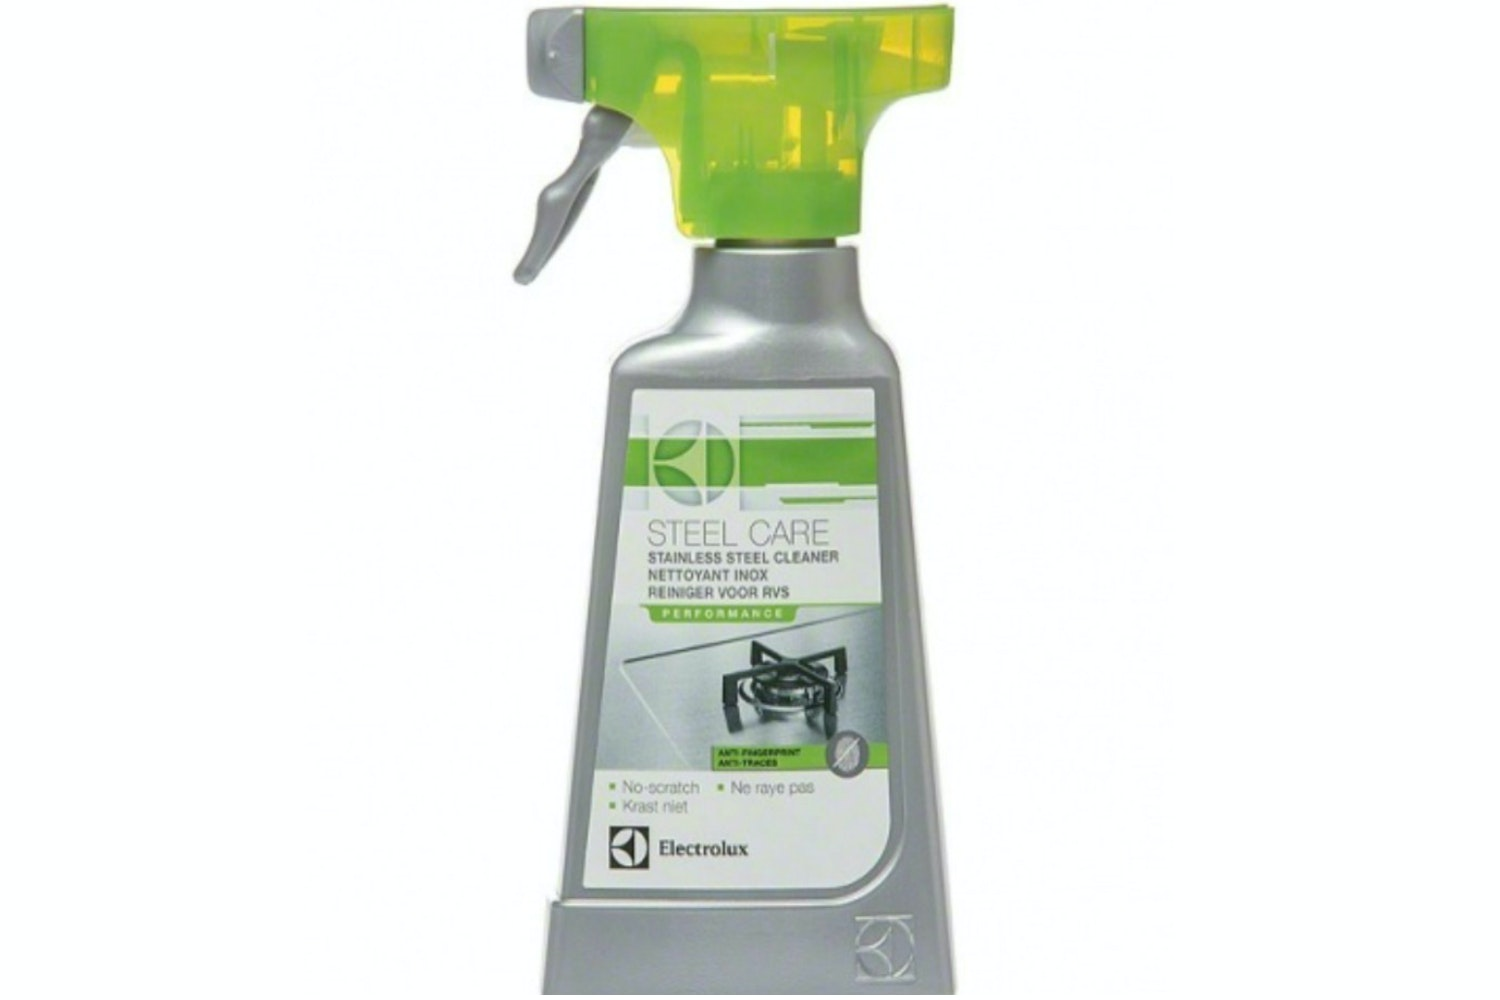 Electrolux Stainless Steel Cleaner | 9029793131